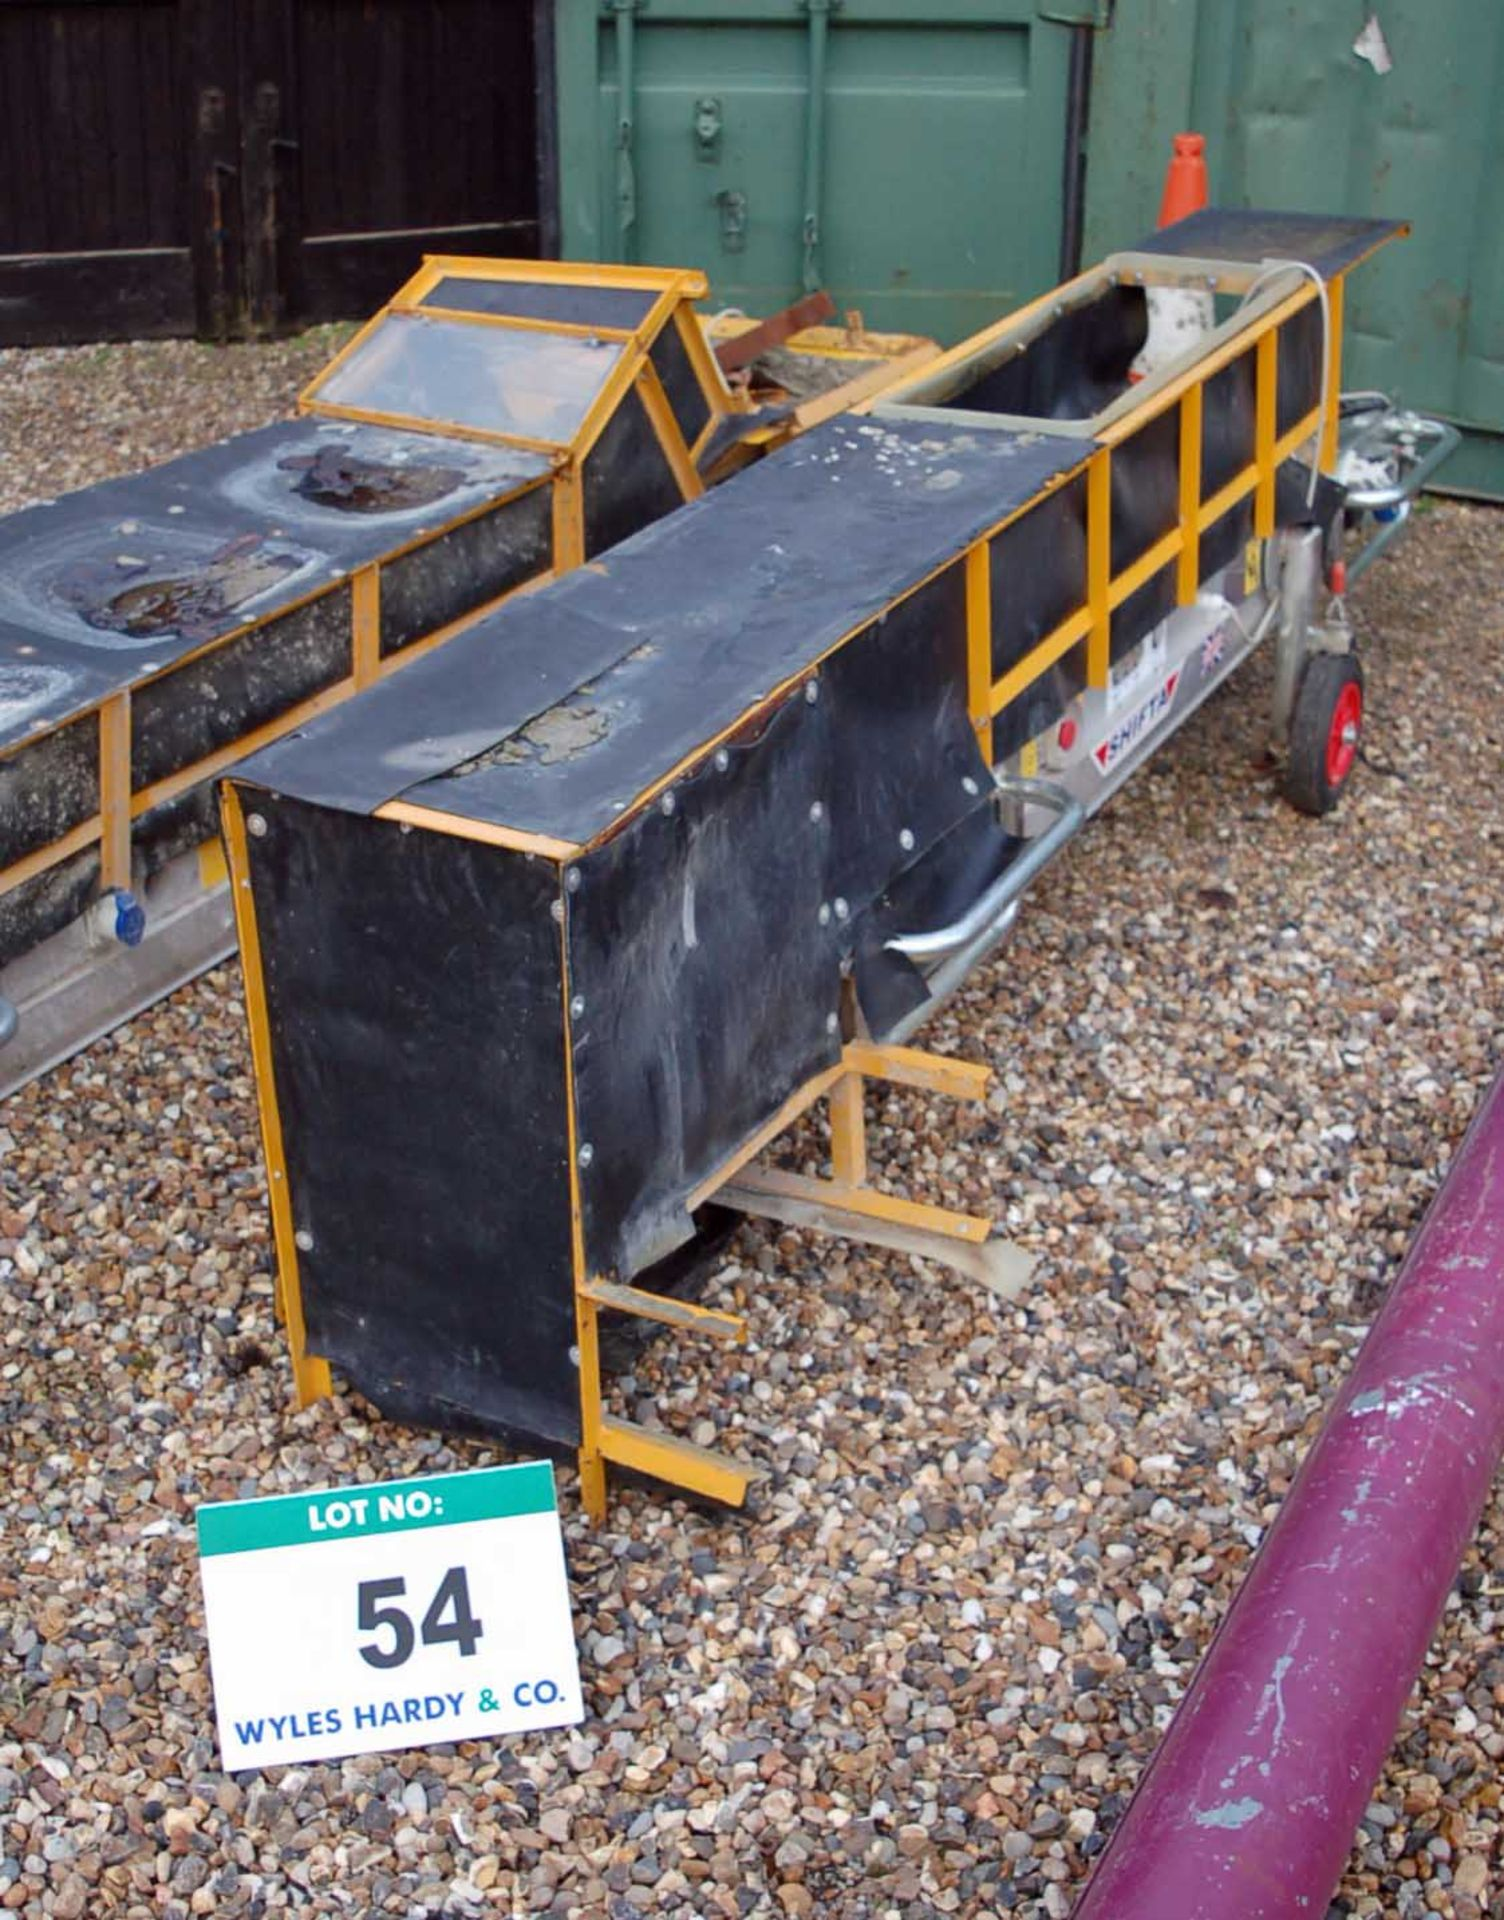 Lot 54 - A MACE SHIFTA Type 1 Approximately 2.5 Meter x 280MM Electric Rubber Troughed Conveyor (110V) in